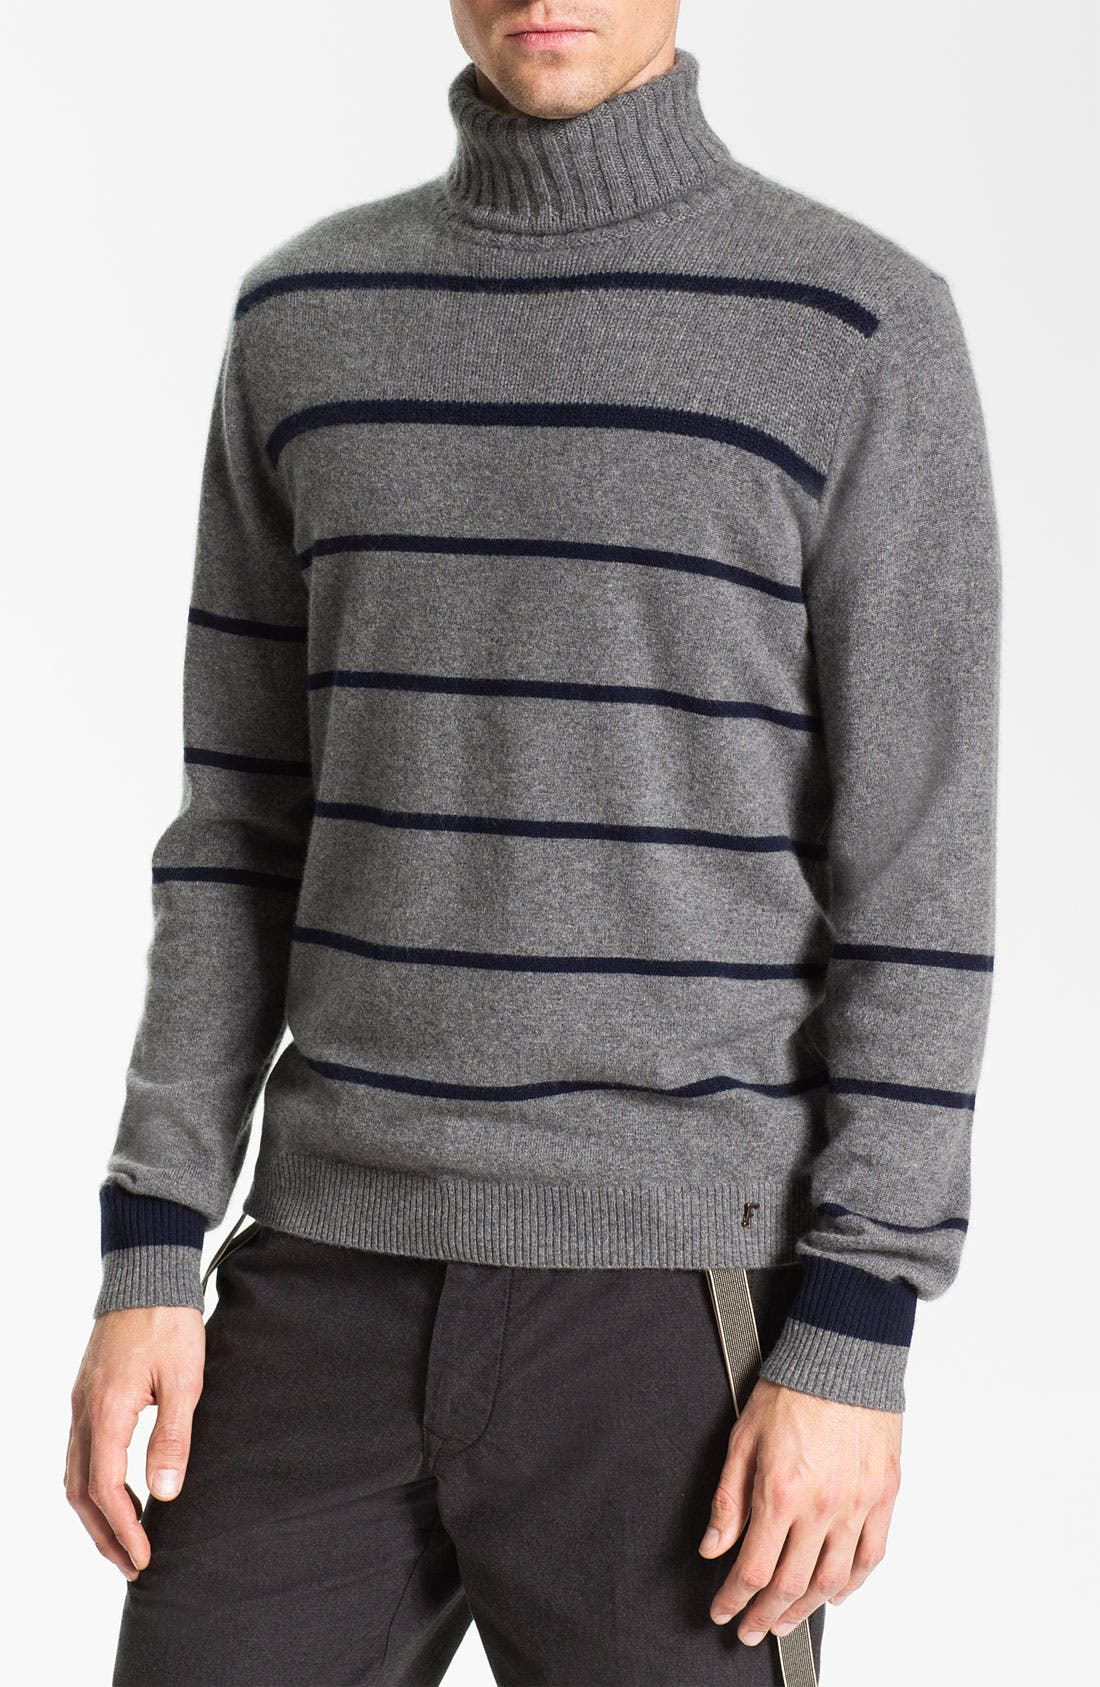 Alternate Image 1 Selected - Façonnable Cashmere Turtleneck Sweater